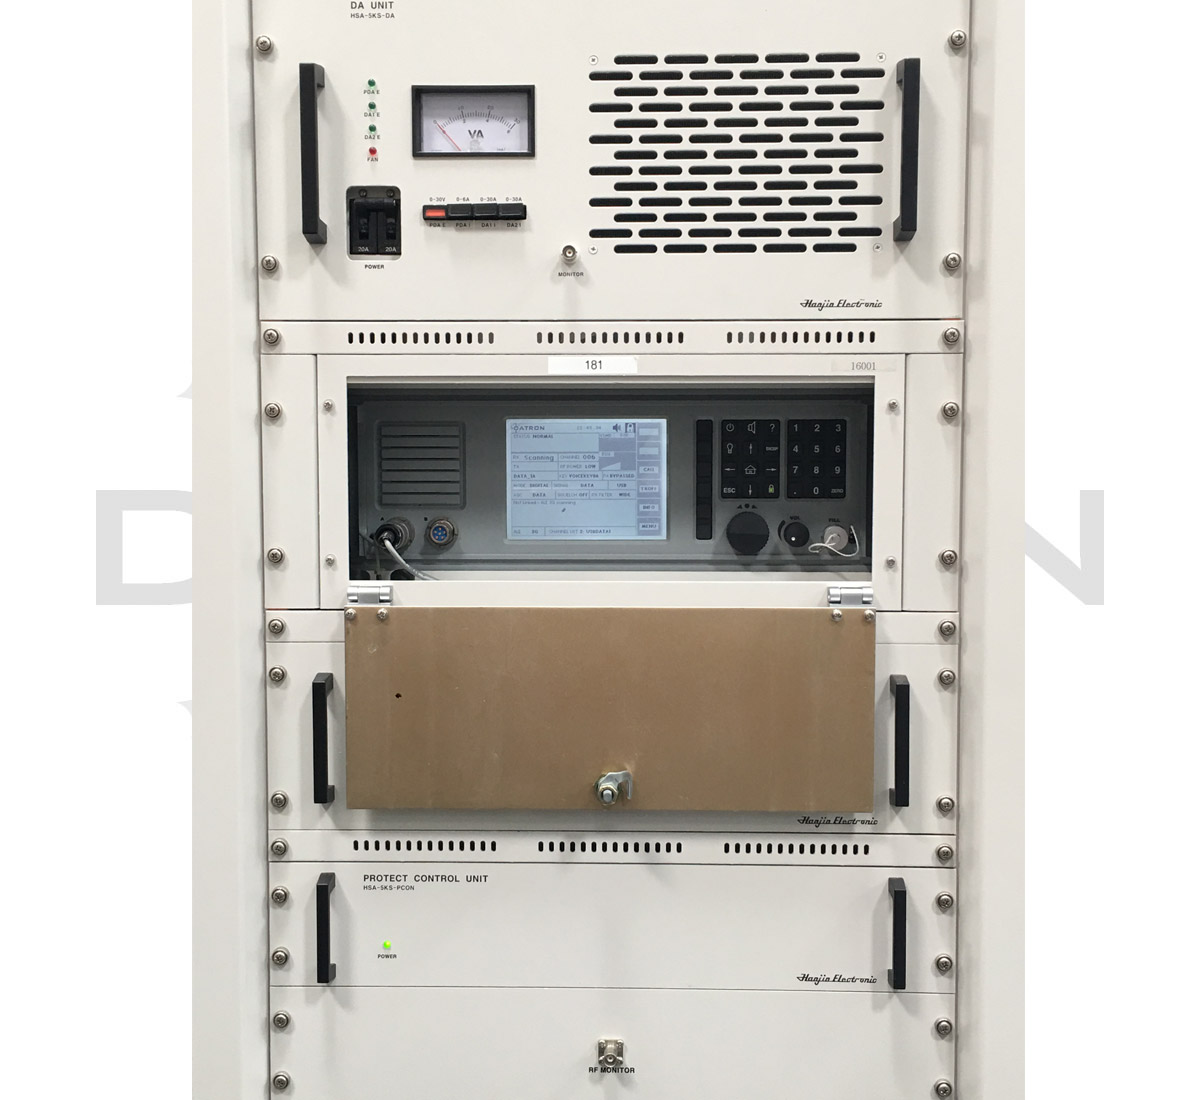 FEATURES - • RT7700H Transceiver• PPS7700 Pre/Post Selector• UPF7700 Power Supply•DTX5K (5kW) / DTX10K (10kW)